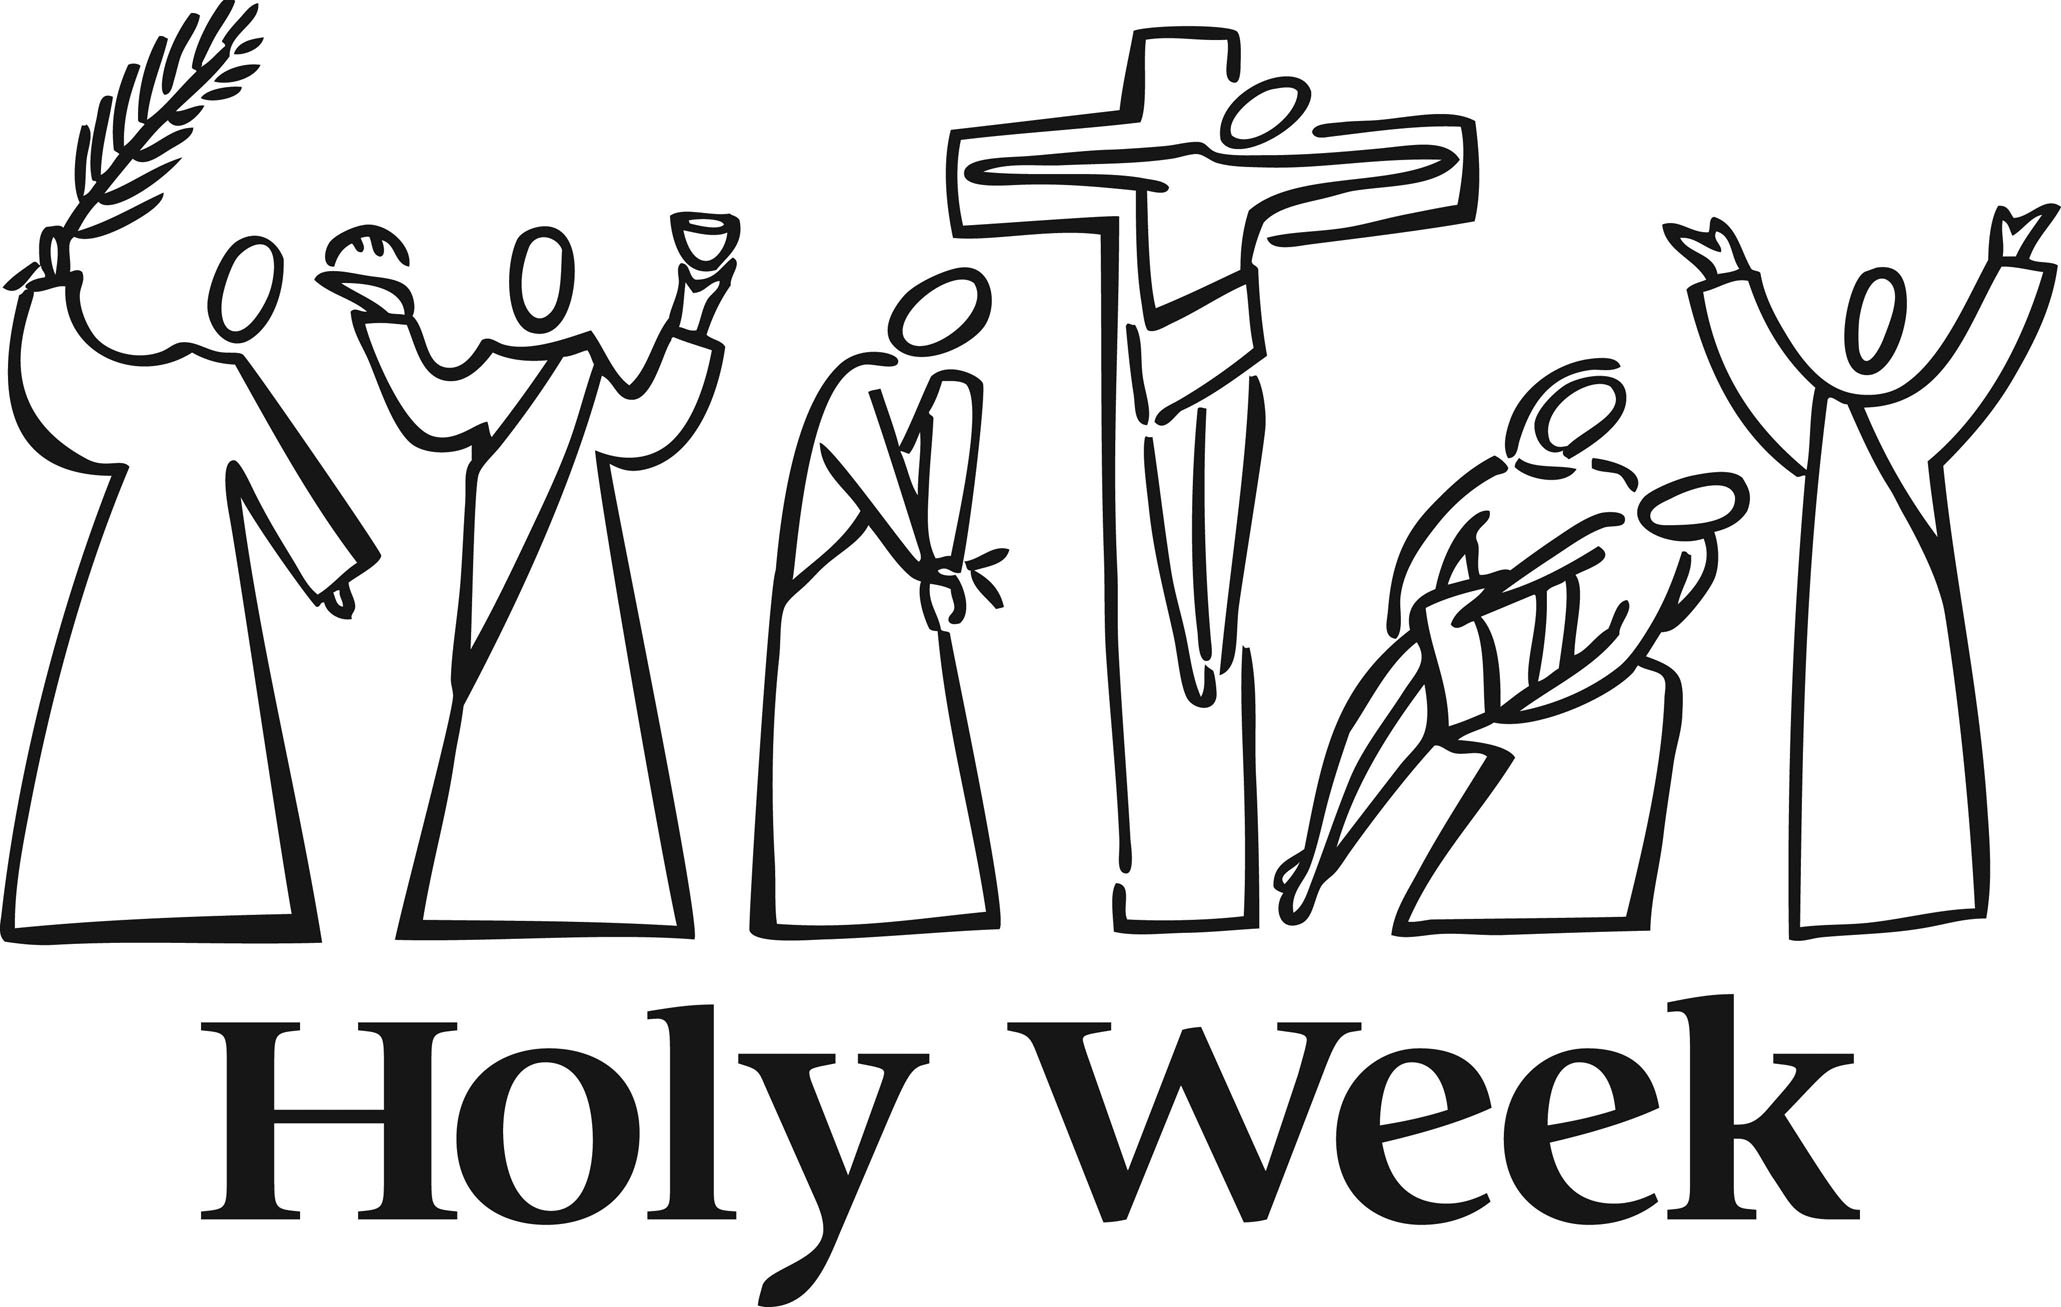 Free cliparts download clip. Easter clipart holy week